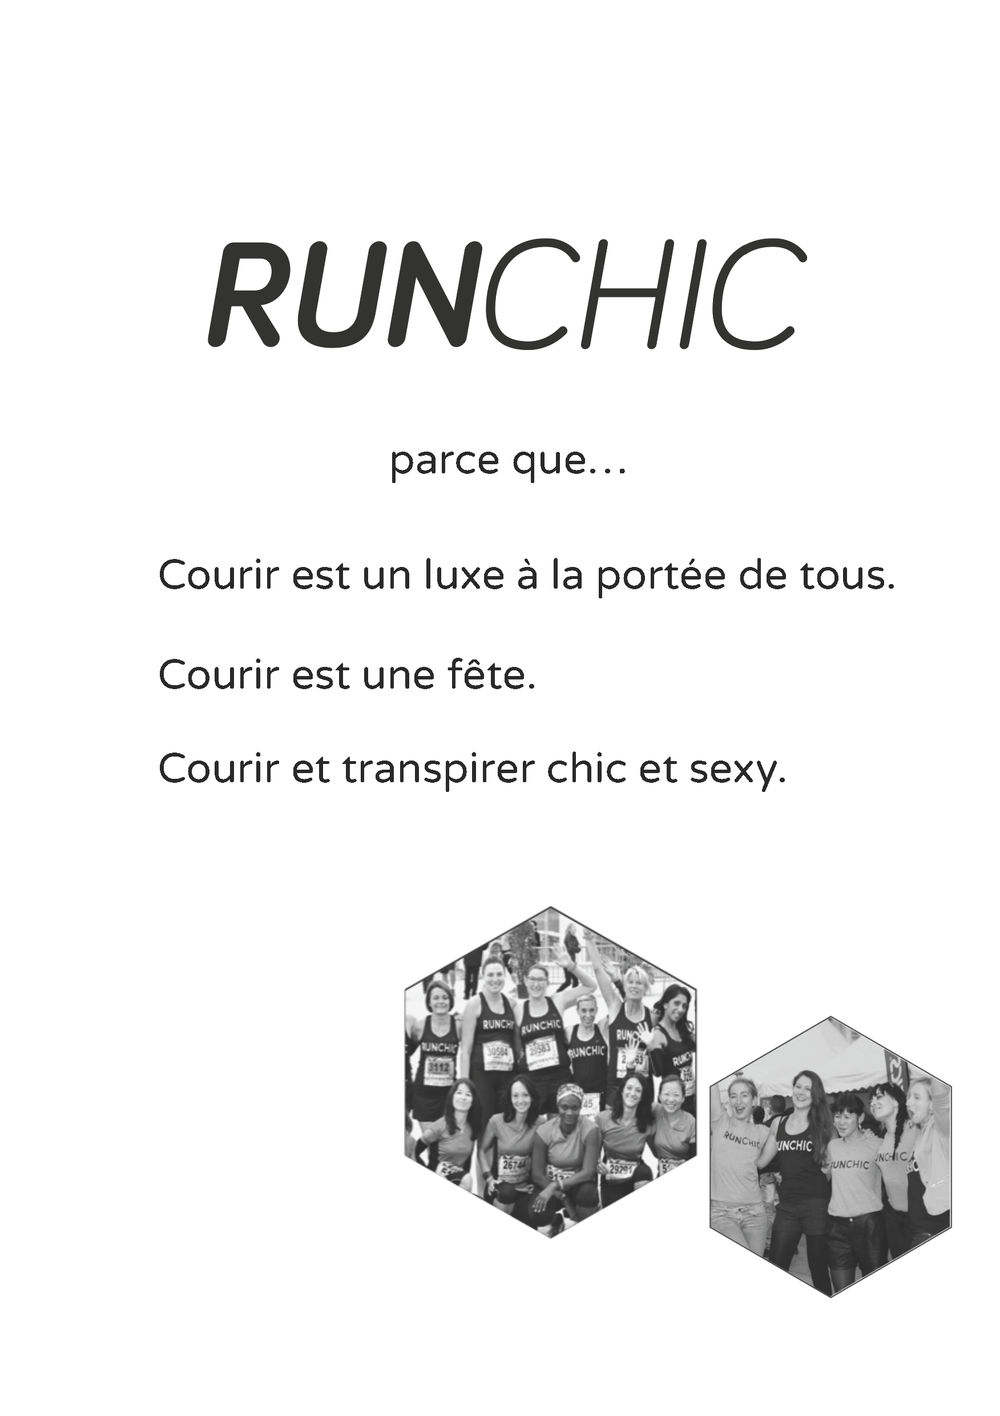 RunChic_Charte_Version def_Page_02.png